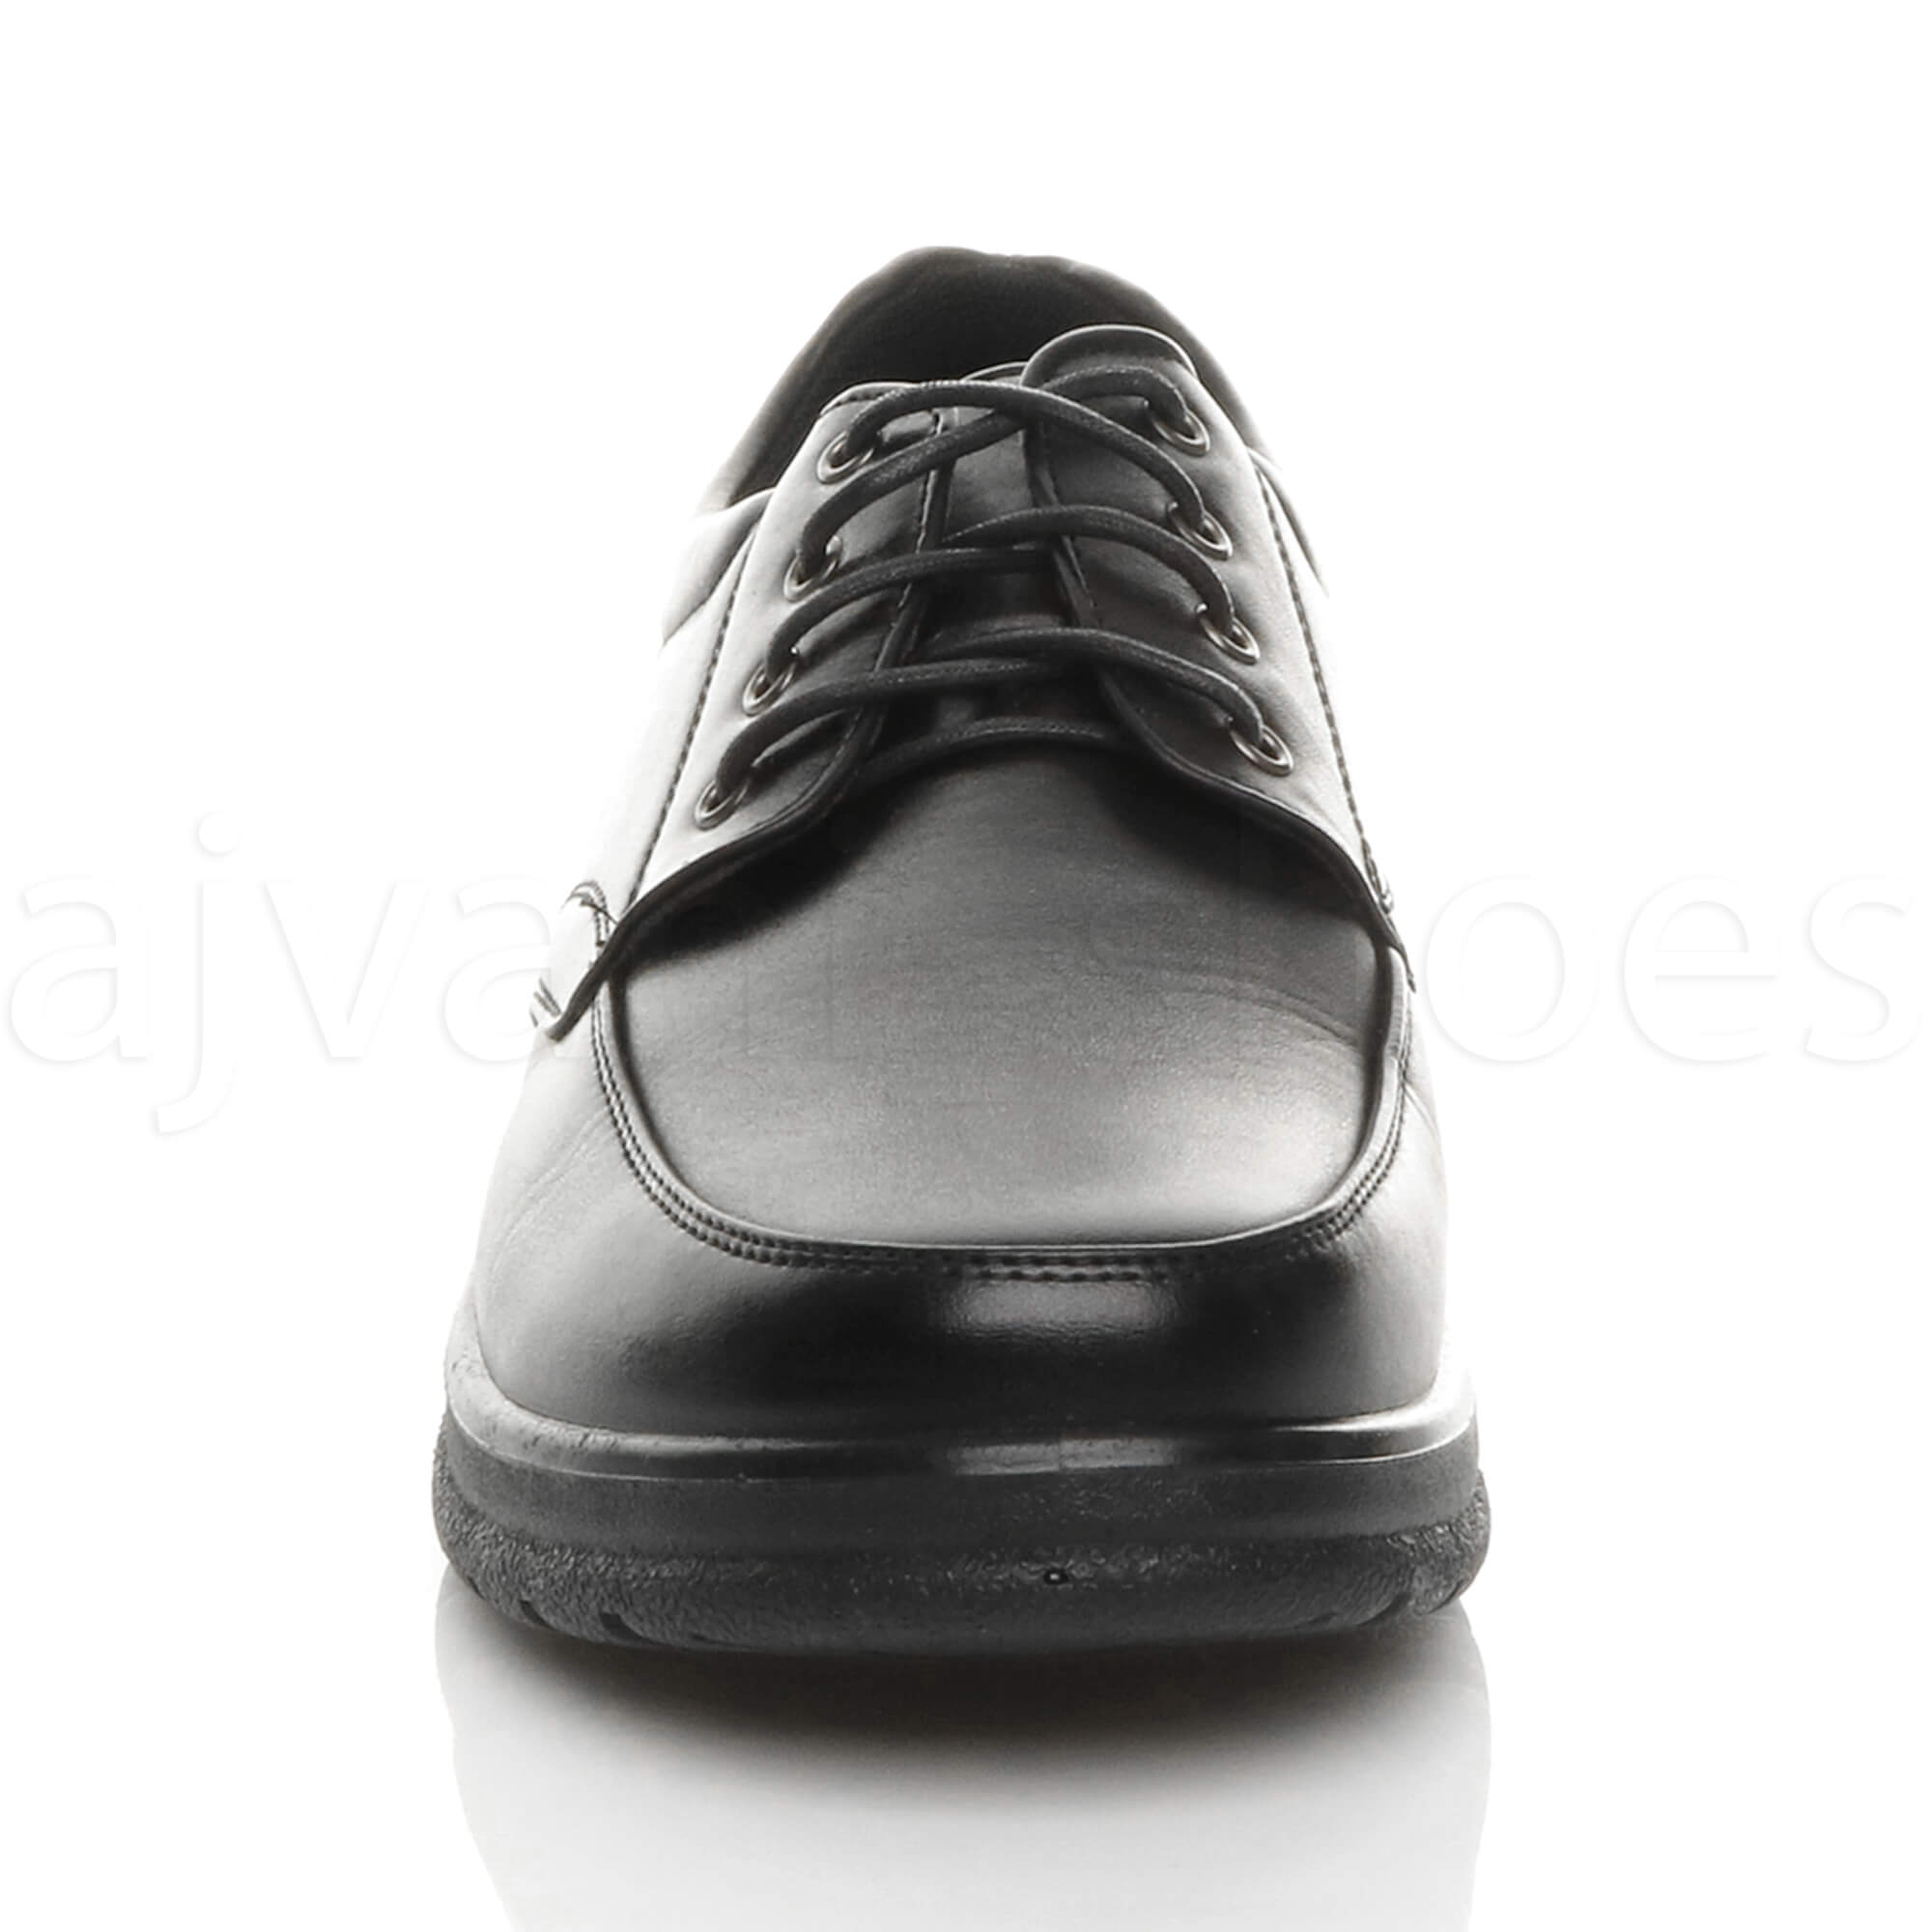 MENS-LACE-UP-CASUAL-MEMORY-FOAM-INSOLE-COMFORT-CUSHIONED-WORK-SHOES-SIZE thumbnail 7